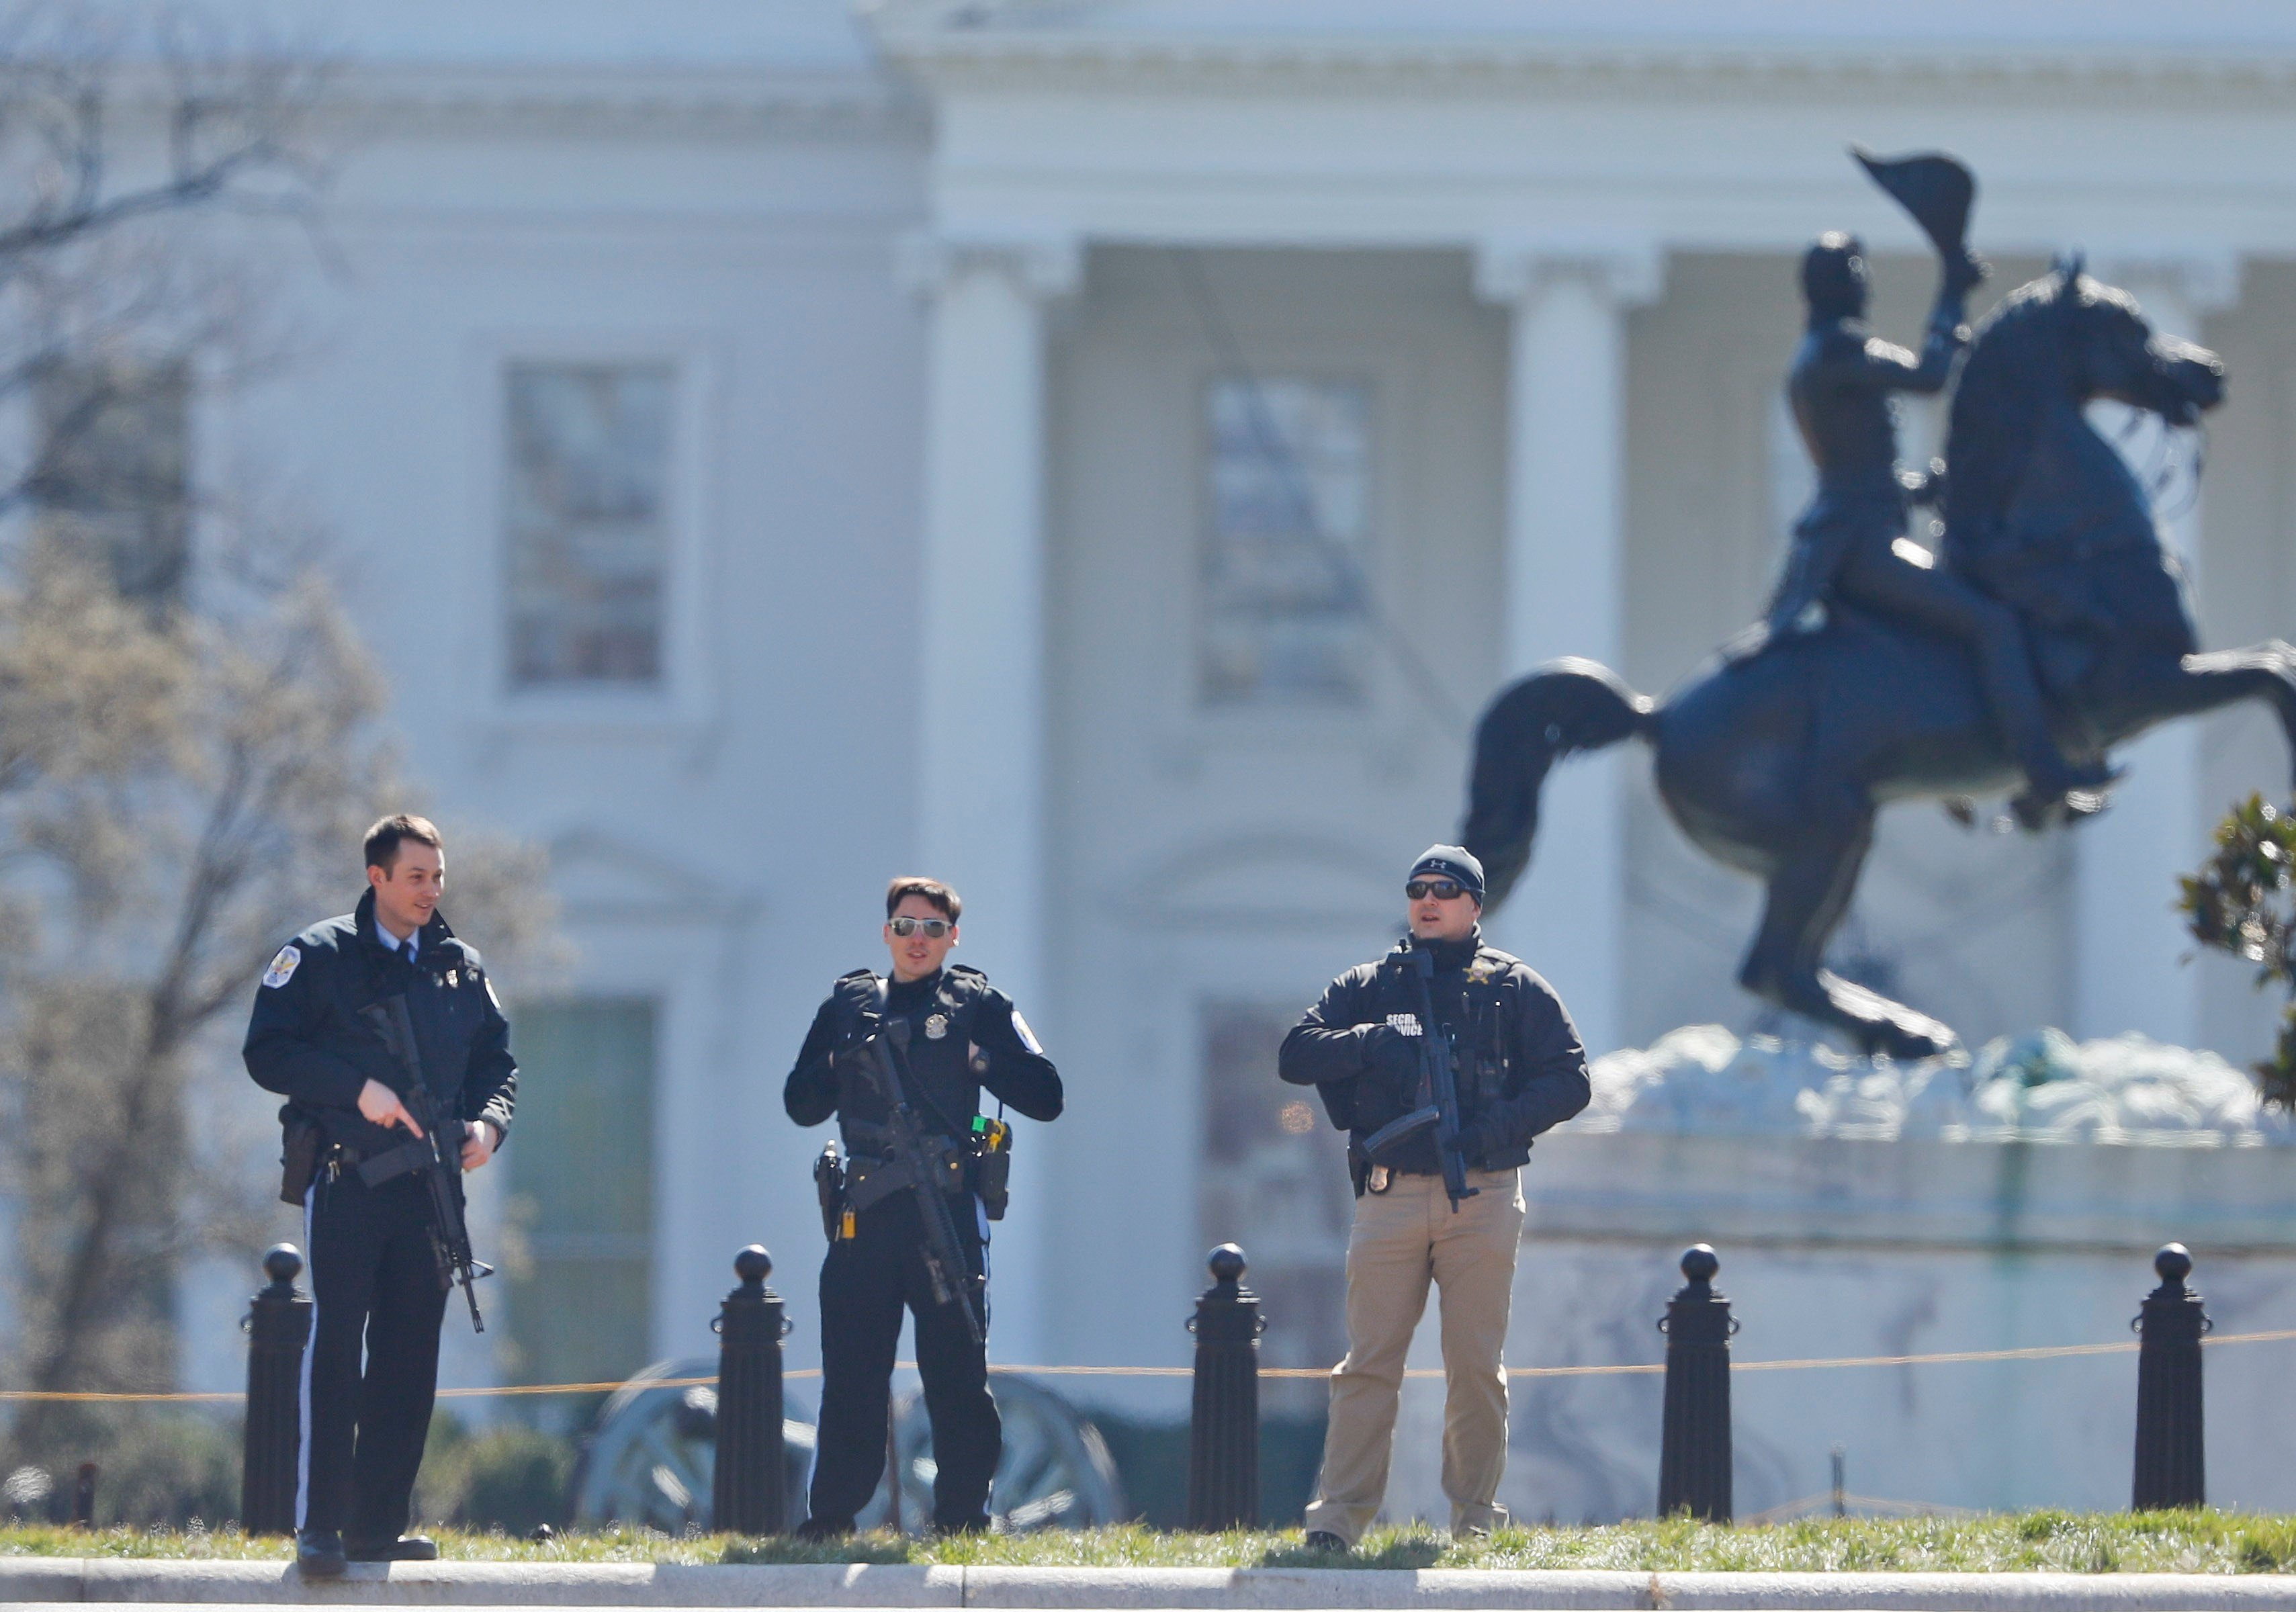 Law enforcement officers stand at the entrance to Lafayette Park across from the White House in Washington, after they area was closed to pedestrian traffic. A man apparently shot himself along the north fence of the White House. AP Photo/Pablo Martinez